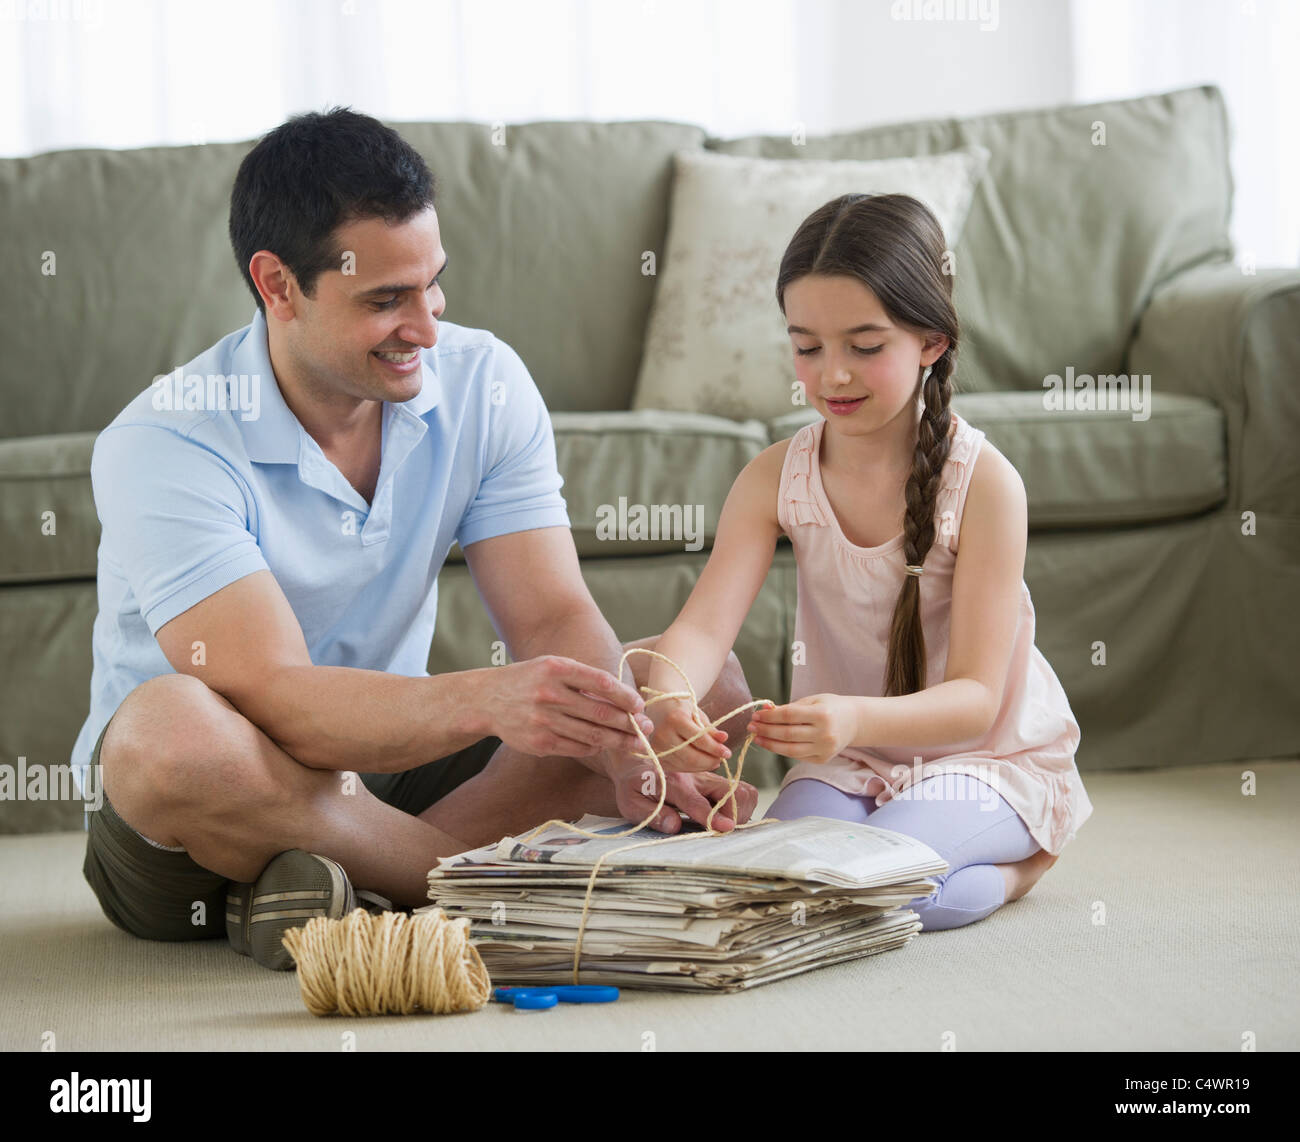 USA, New Jersey, Jersey City, father and daughter (8-9) wrapping up wastepaper bundle - Stock Image